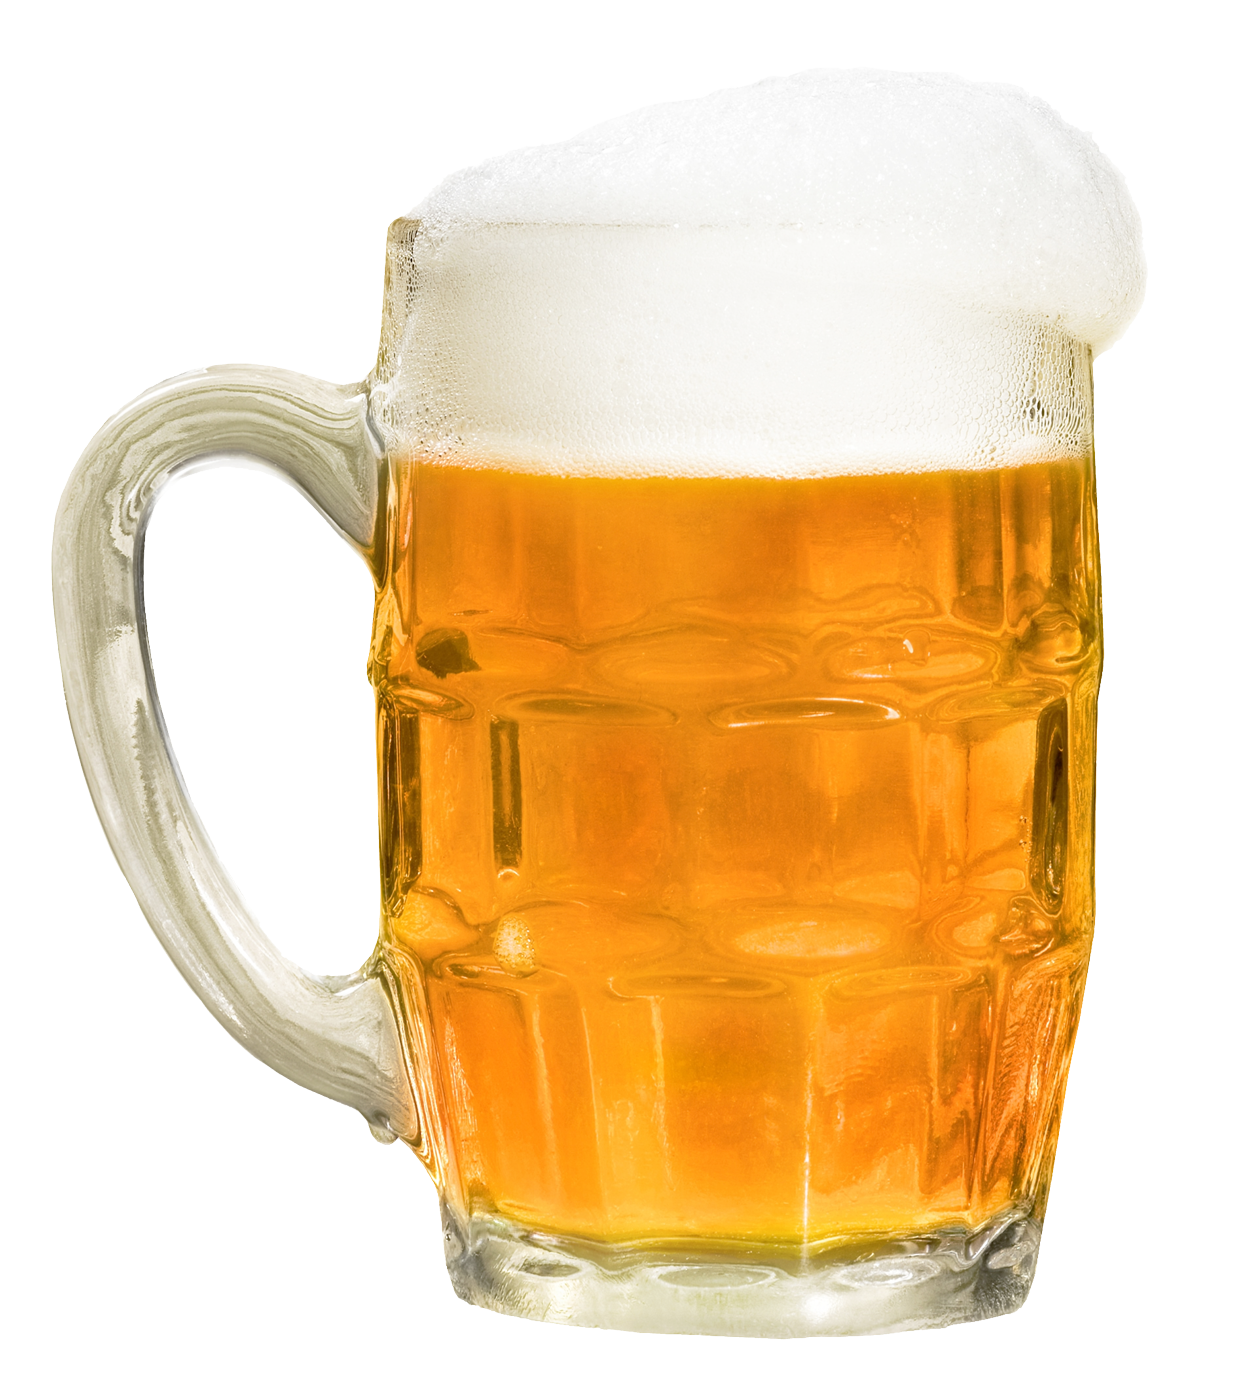 Transparent beer jar. Png images pngpix mug